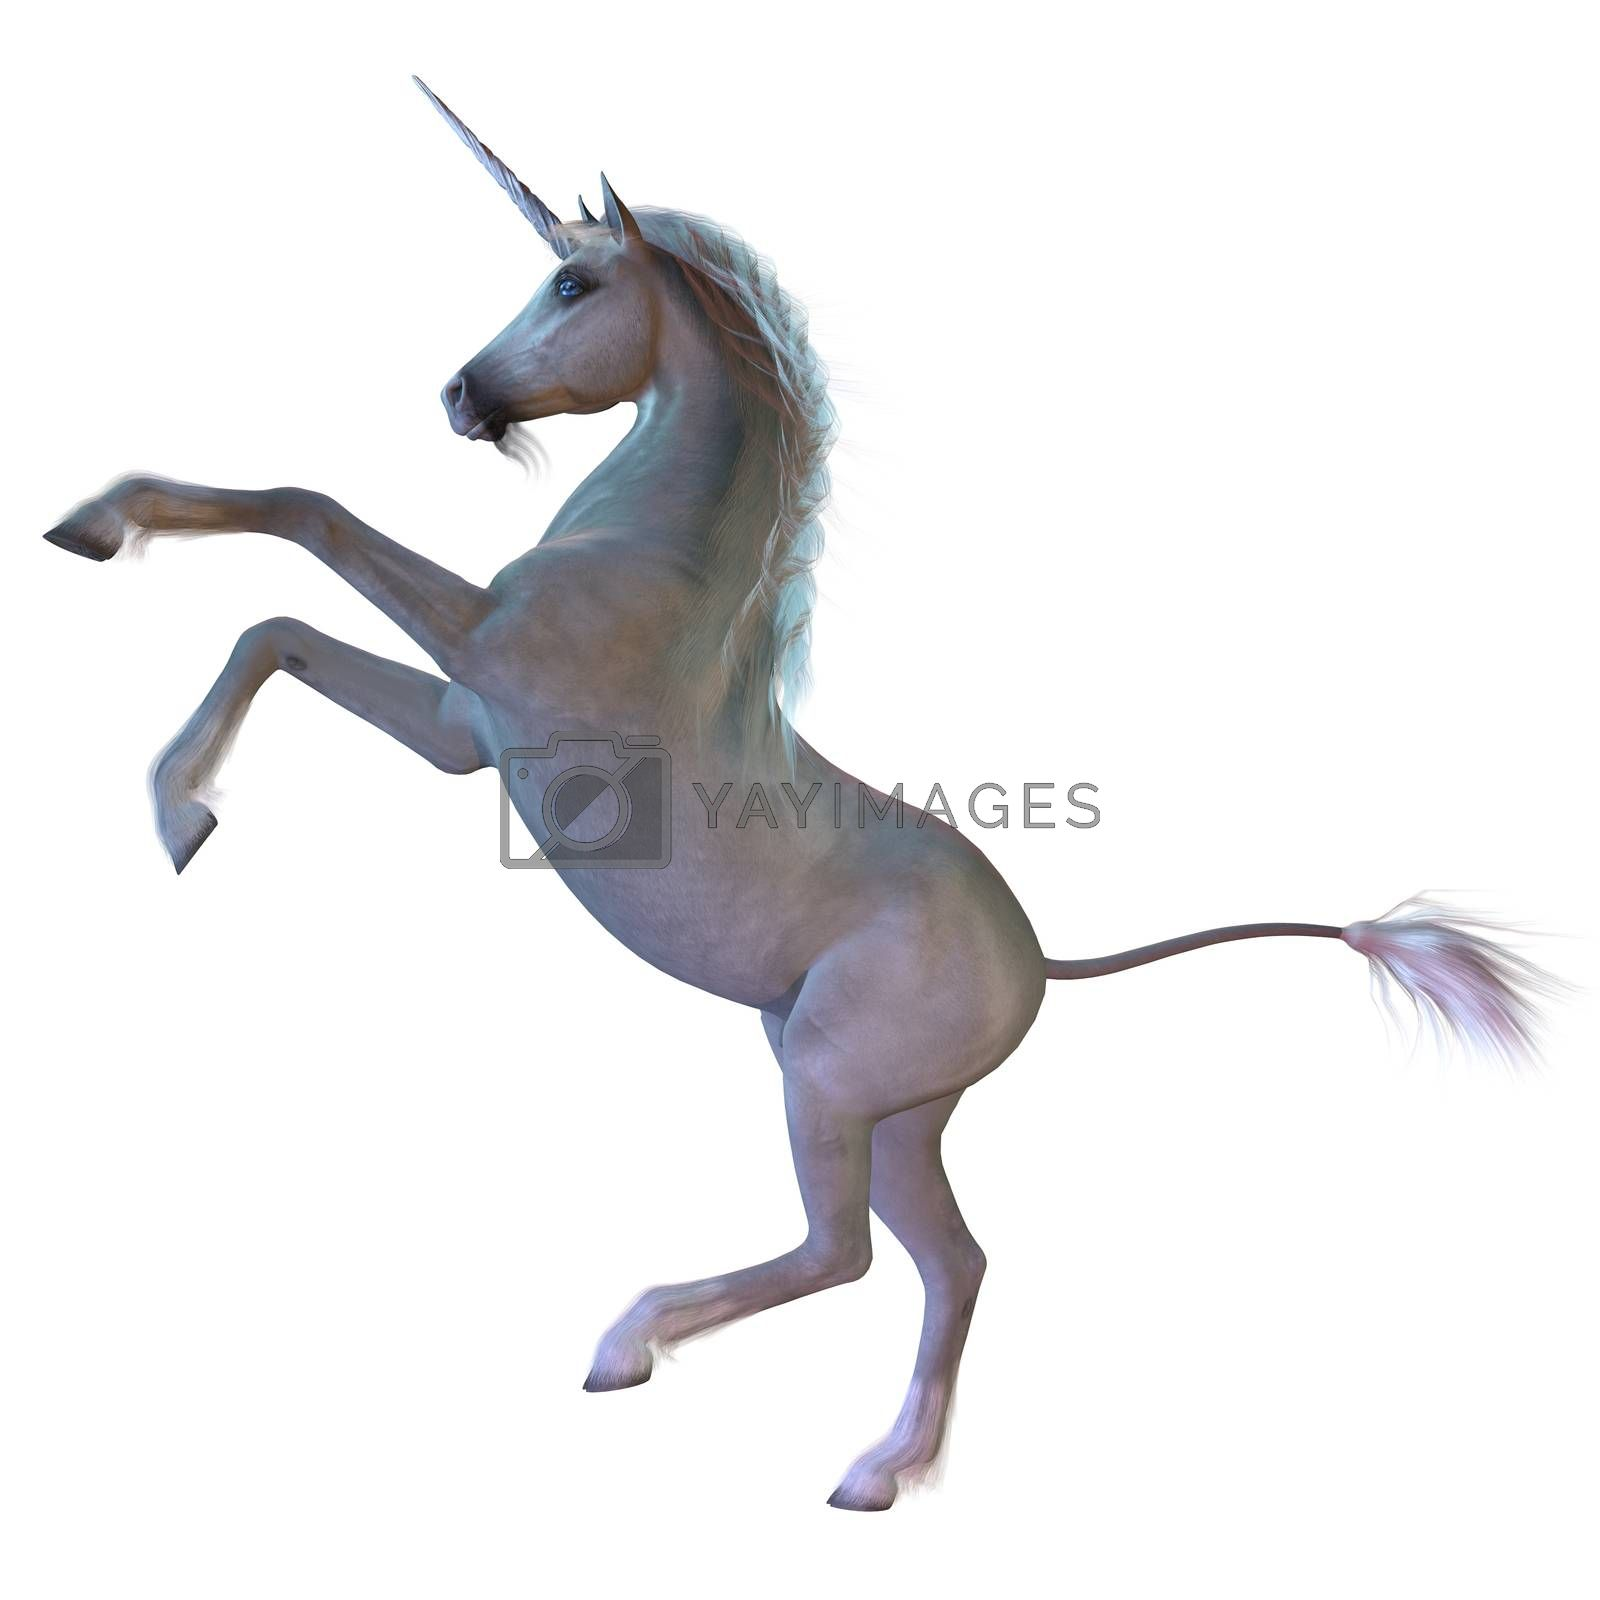 A Unicorn is a white magical horse with cloven hoofs, a forehead horn and a beard and is a creature of mythology.